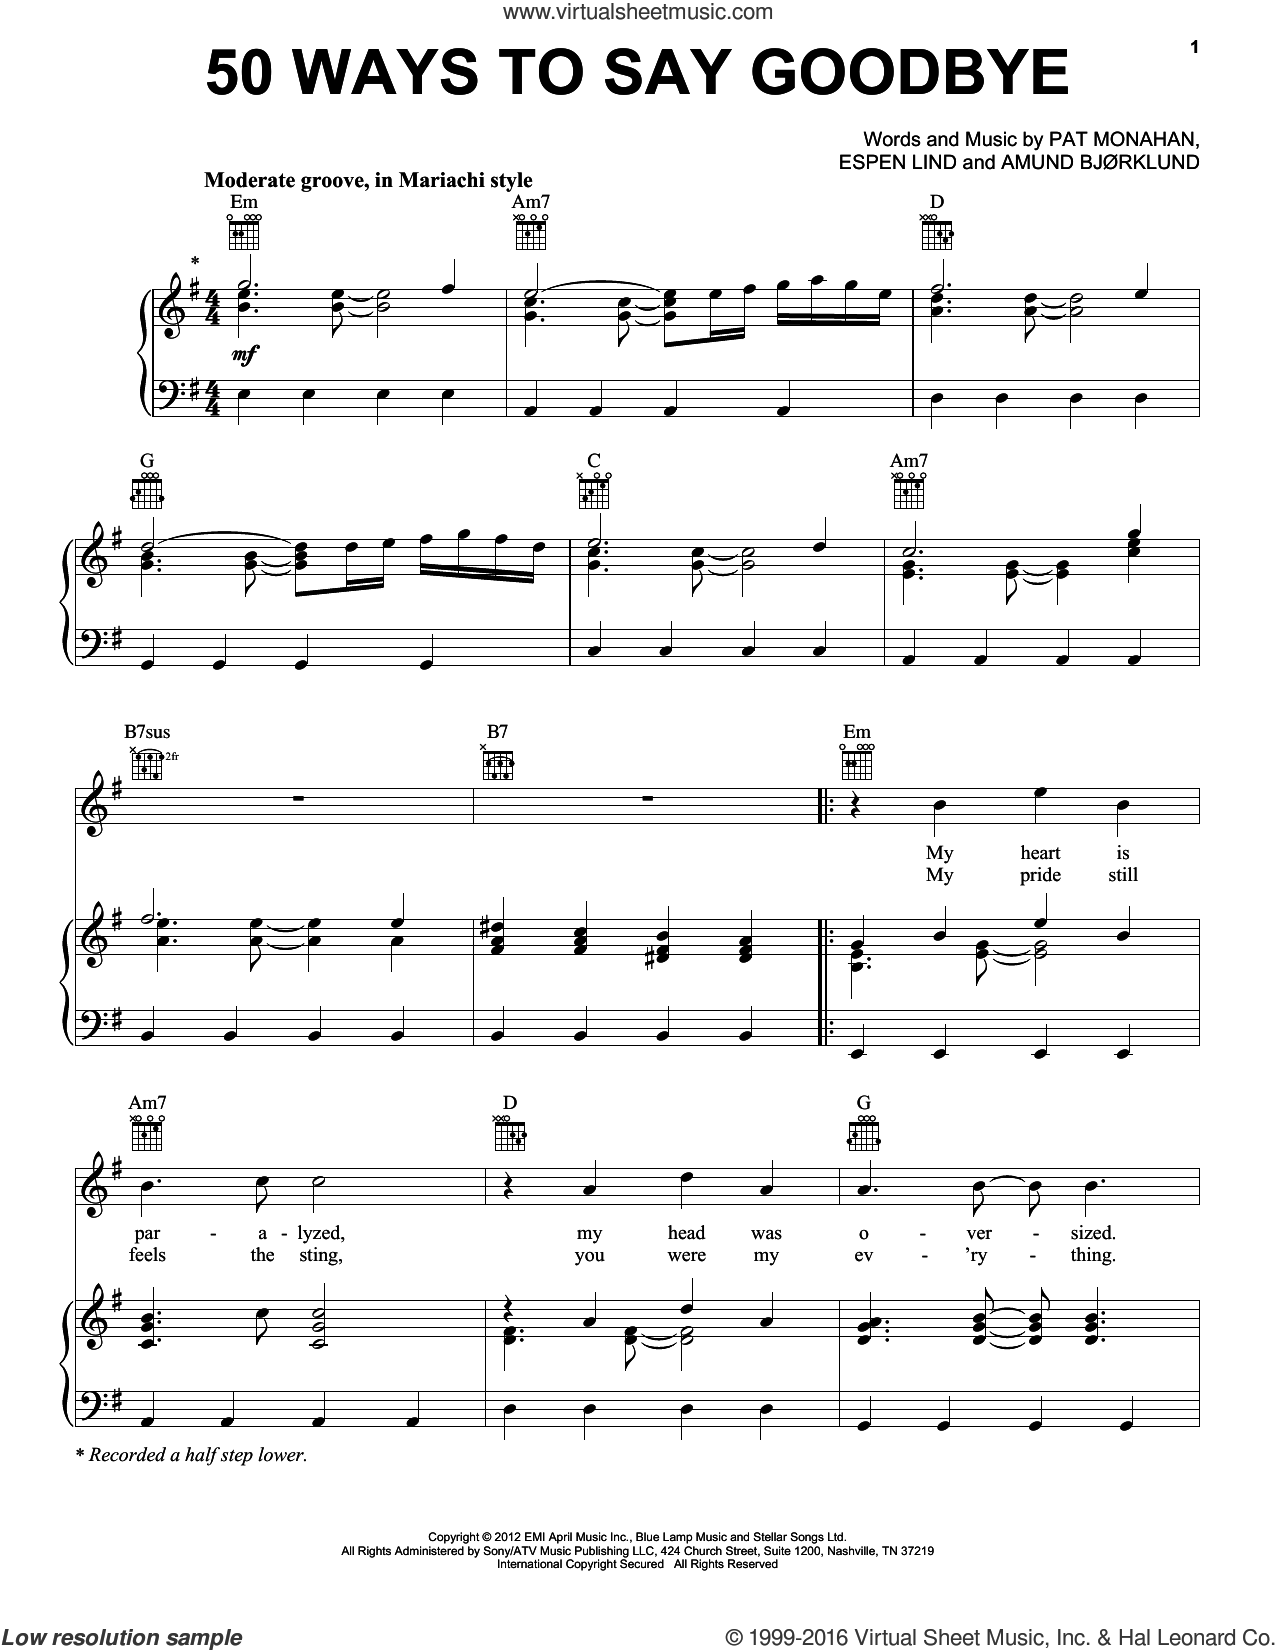 50 Ways To Say Goodbye sheet music for voice, piano or guitar by Pat Monahan, Amund Bjorklund and Train. Score Image Preview.